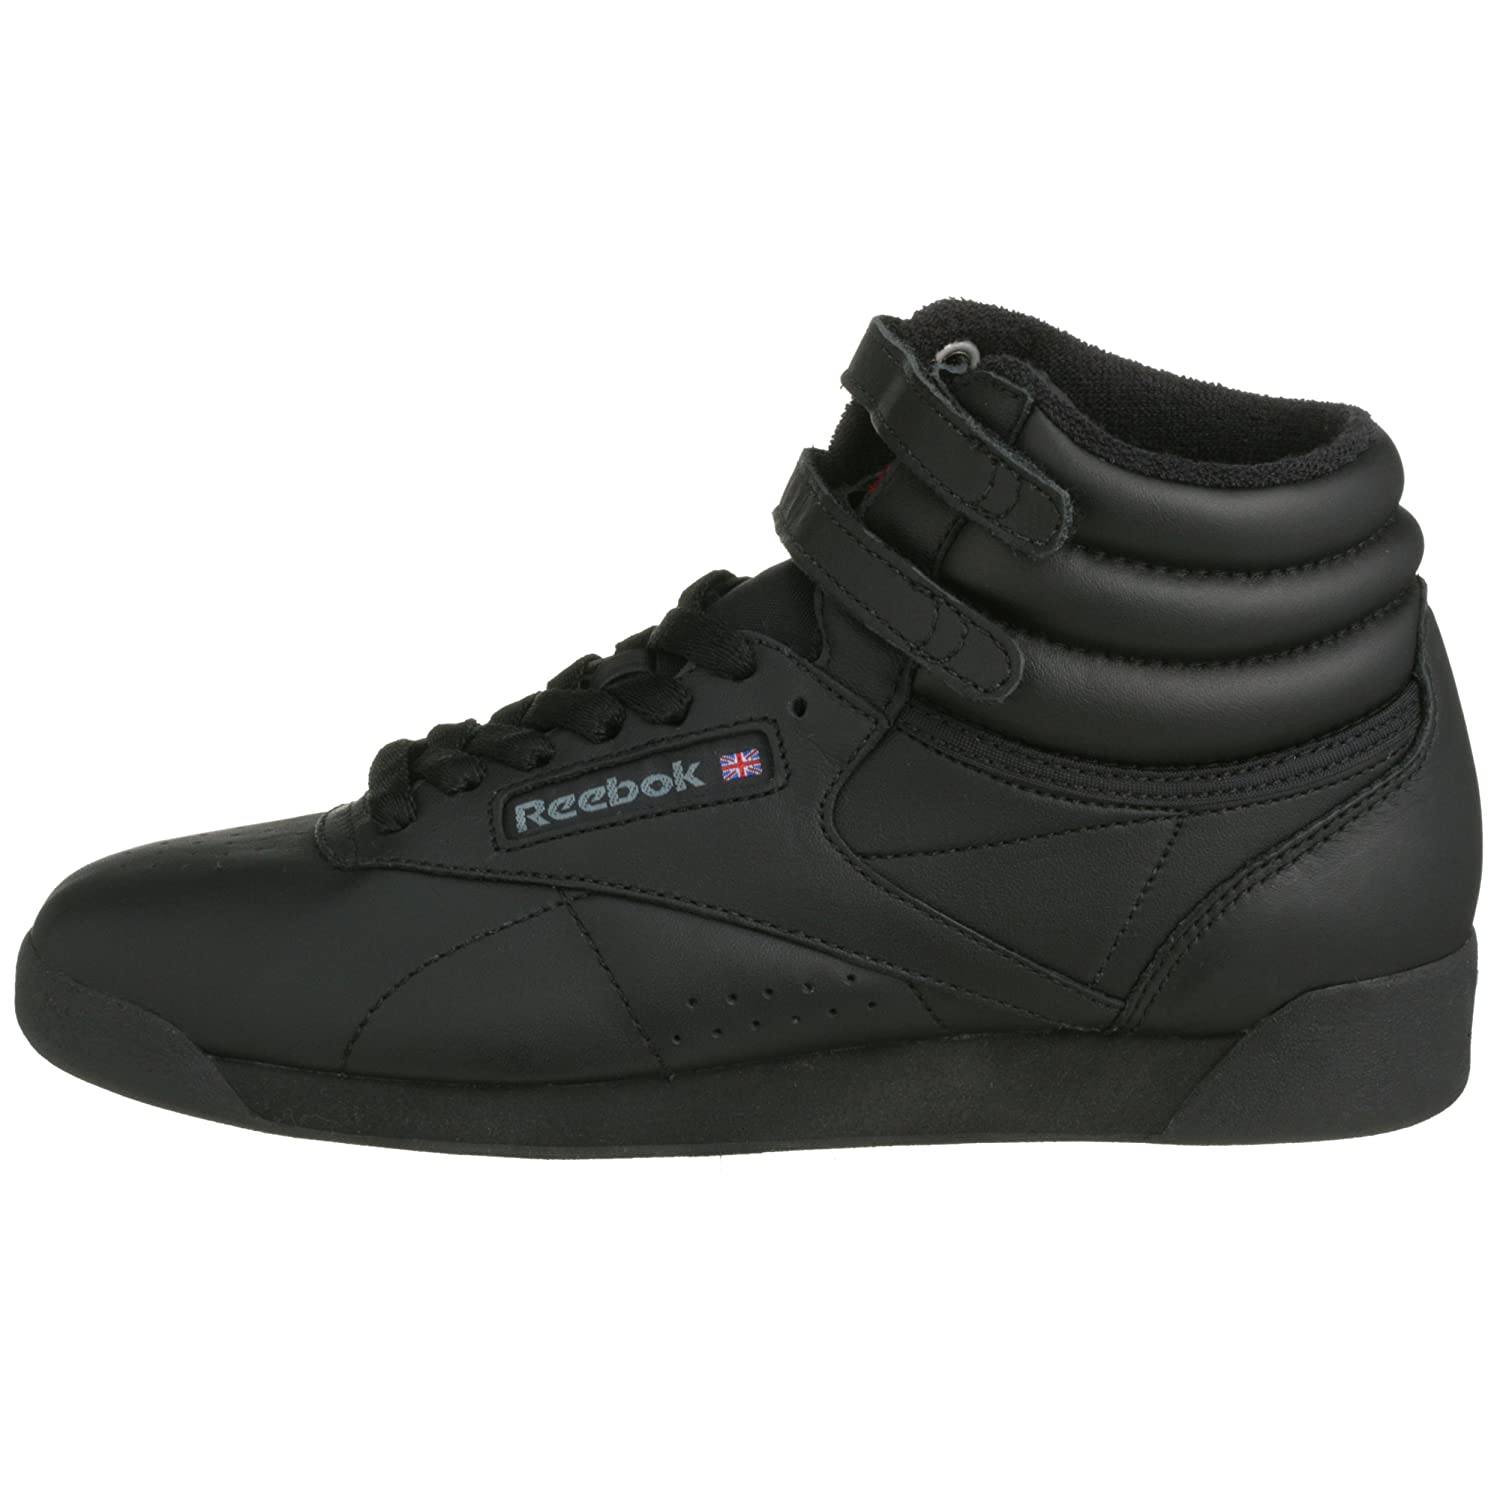 Amazon.com | Reebok F/S Hi Black Black Womens Trainers Size 2.5 UK | Shoes